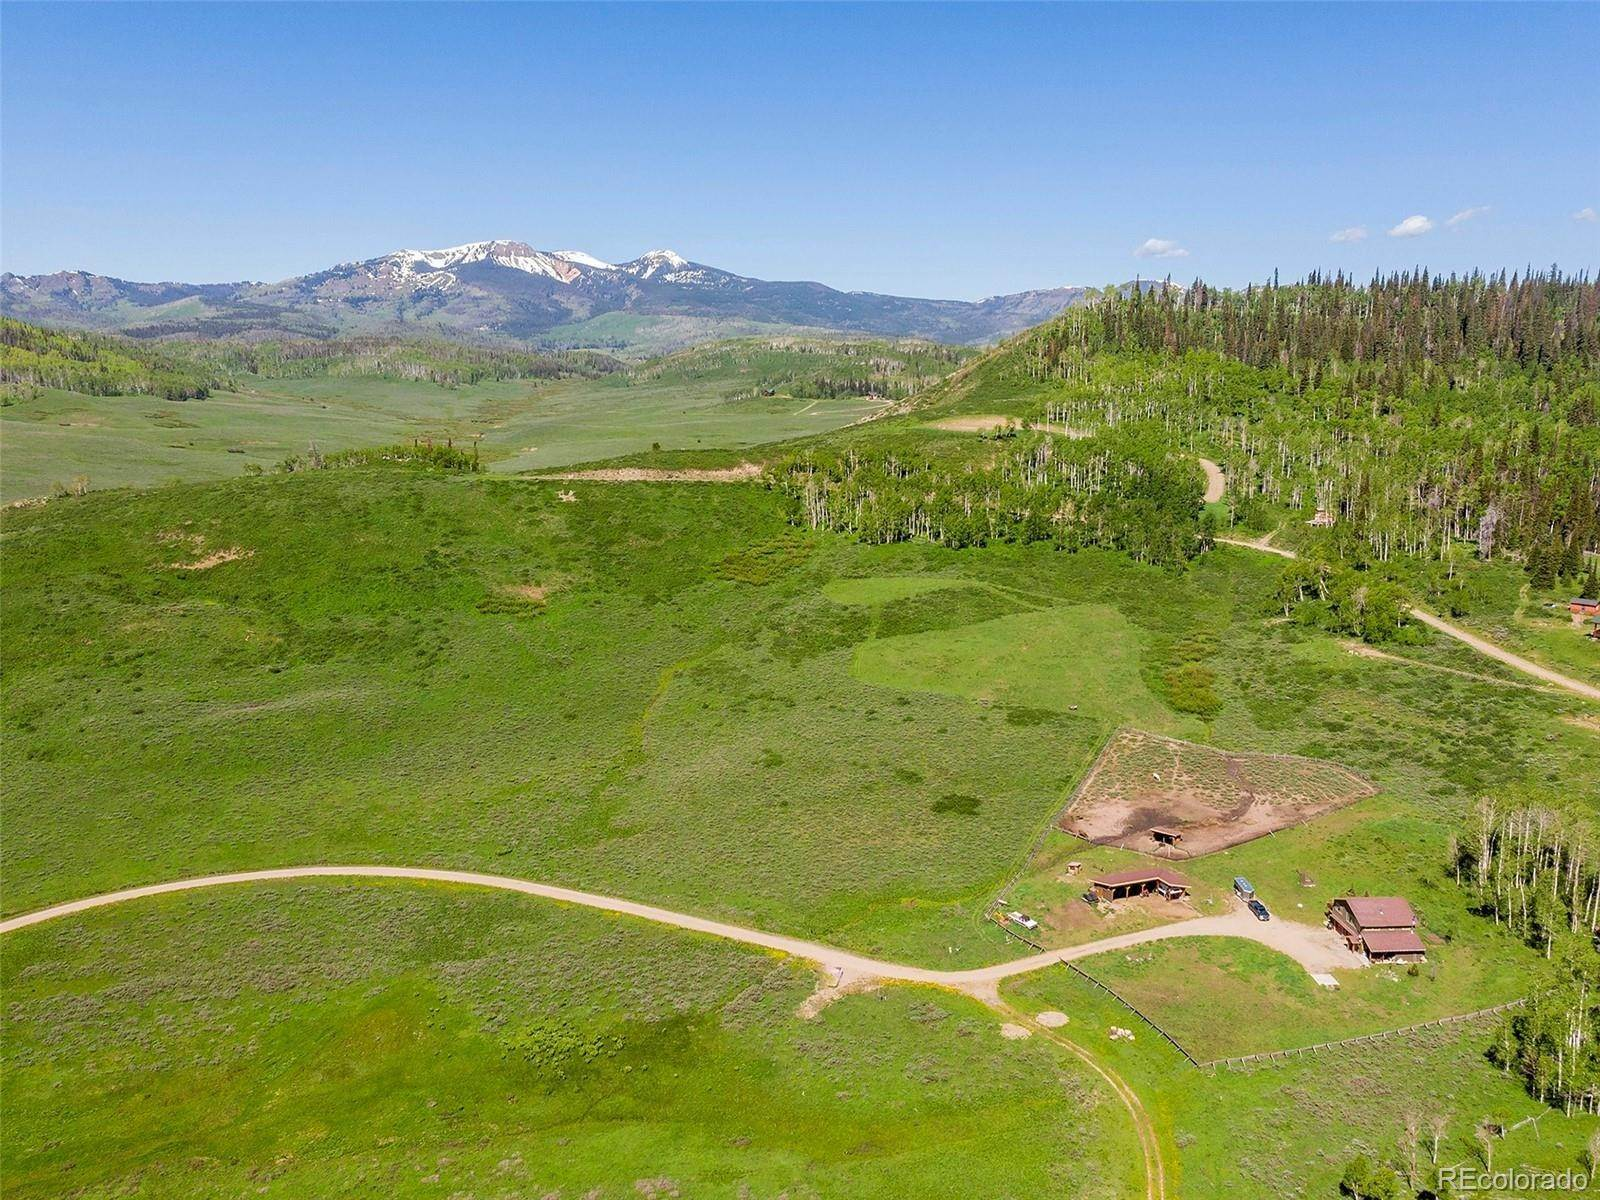 Land at Clark, Colorado United States